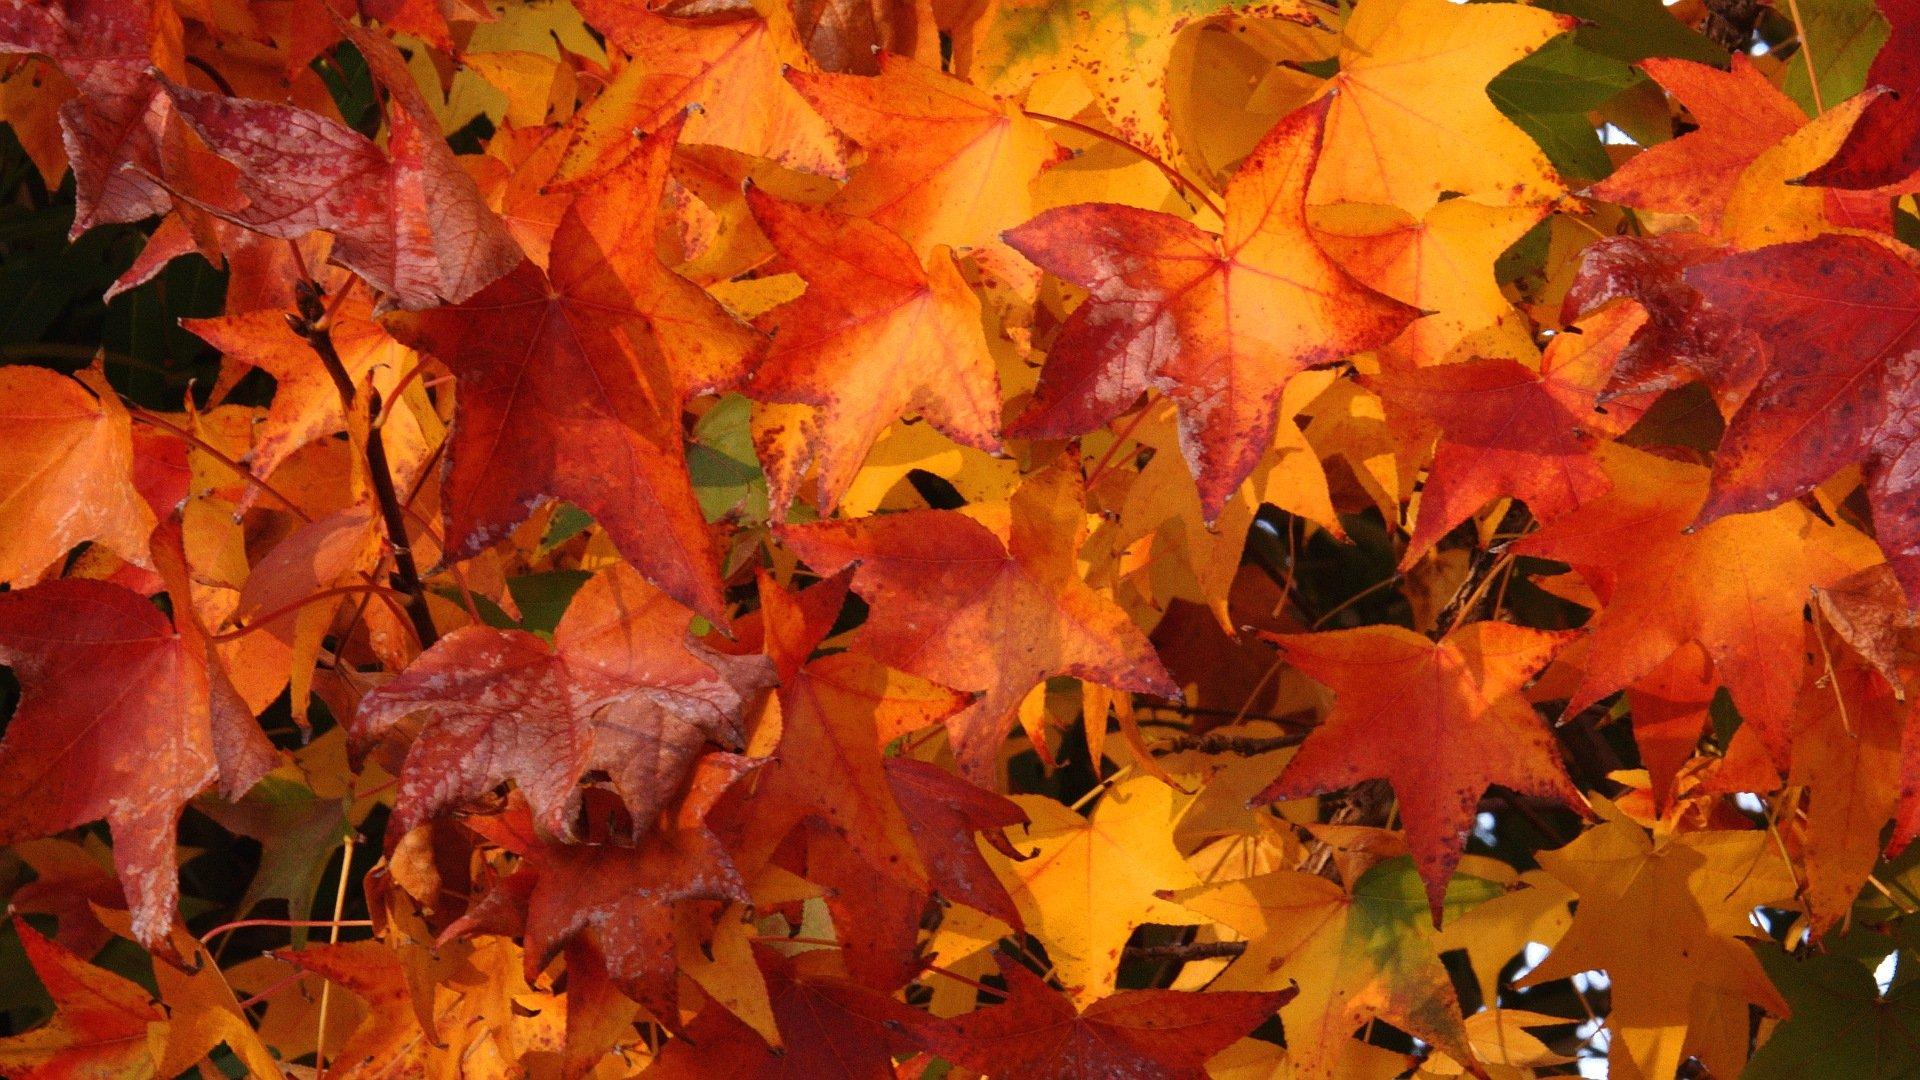 Theme Bin Blog Archive Fall Colors HD Wallpaper 1920x1080